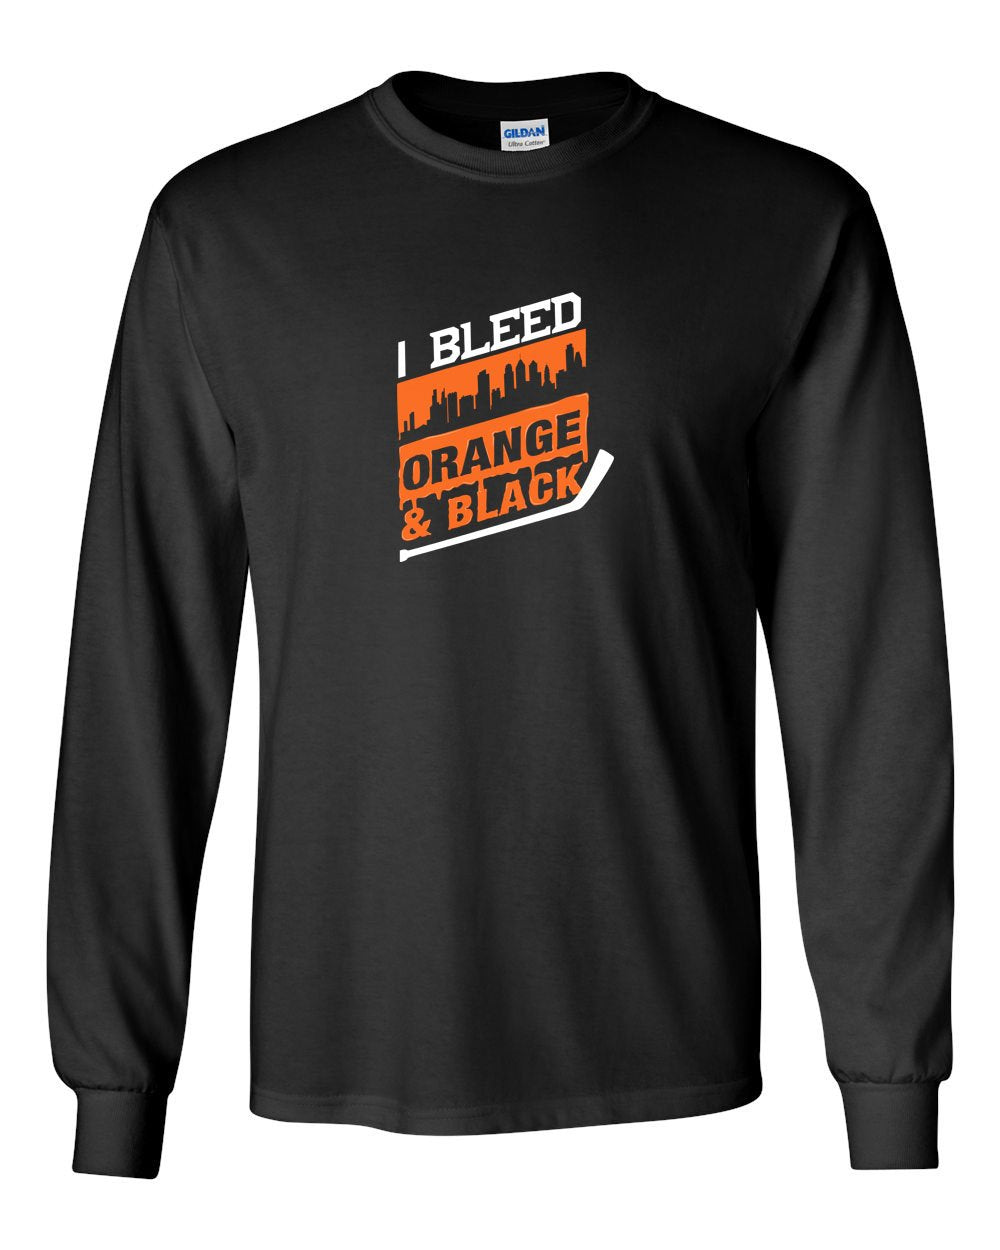 I Bleed Orange and Black MENS Long Sleeve Heavy Cotton T-Shirt